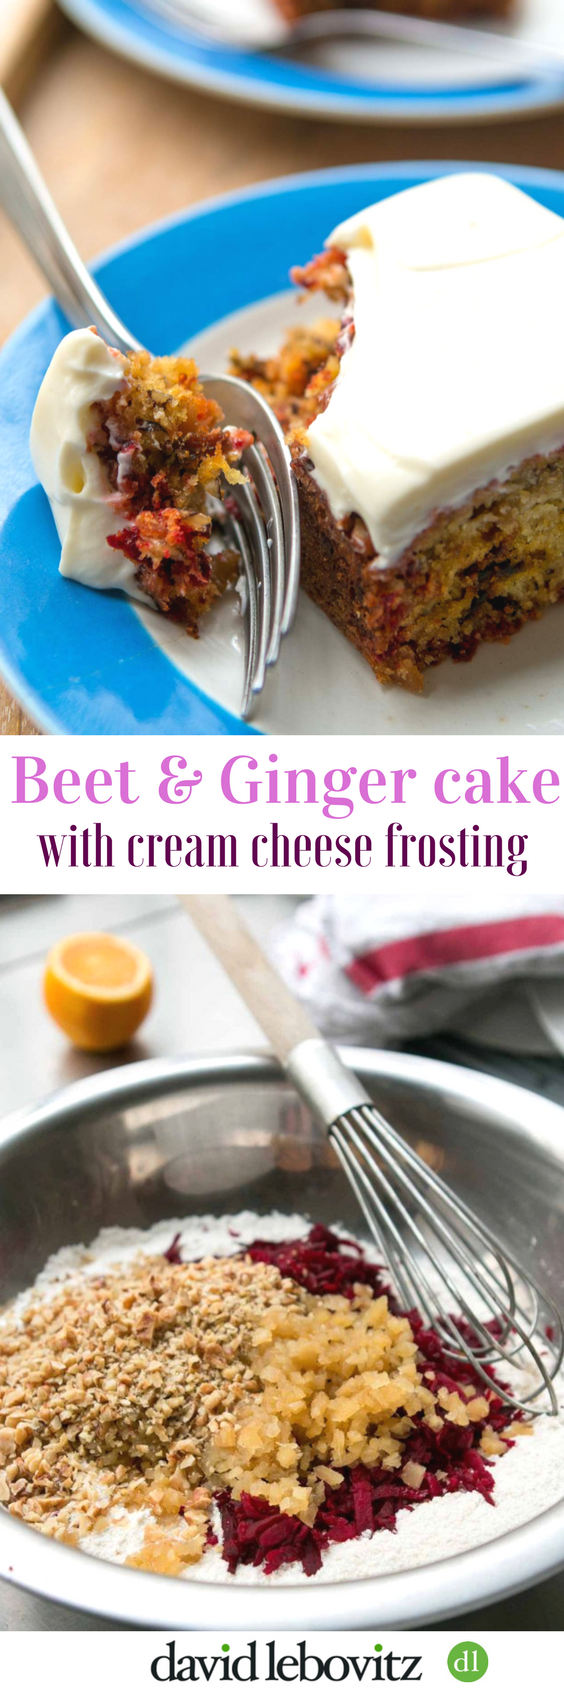 Beet and Ginger Cake with Cream Cheese Frosting - a delicious snack cake recipe!